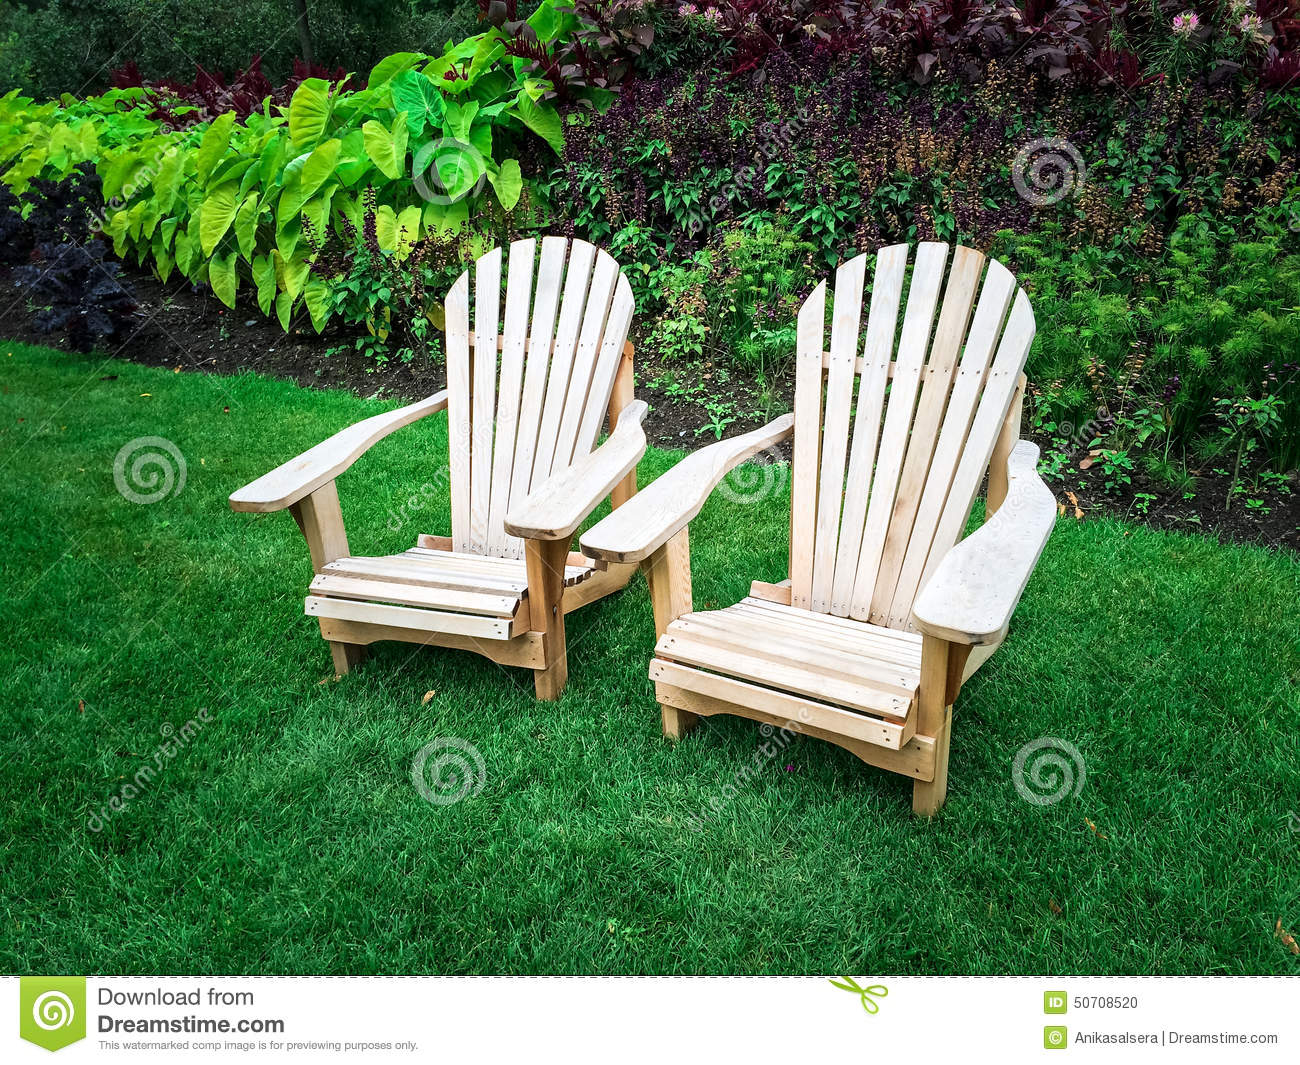 green lawn chairs drive steel transport chair parts wooden on stock photo image 50708520